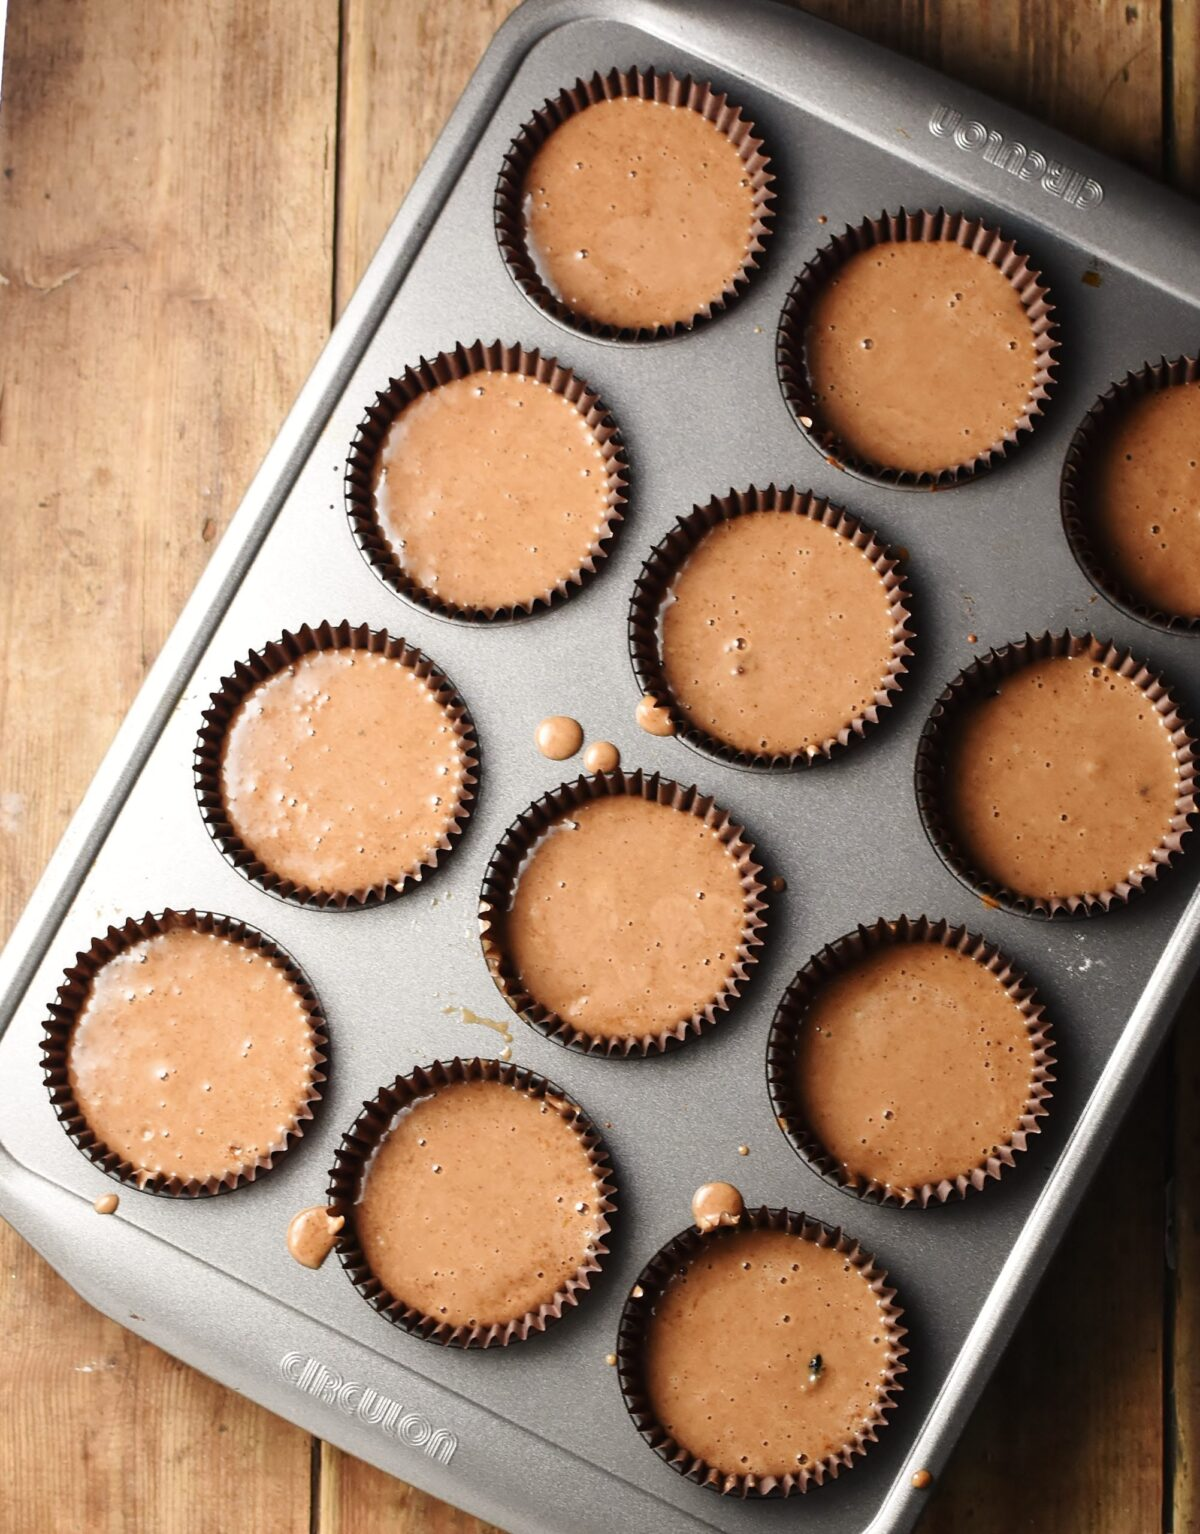 12 unbaked muffins in muffin pan.